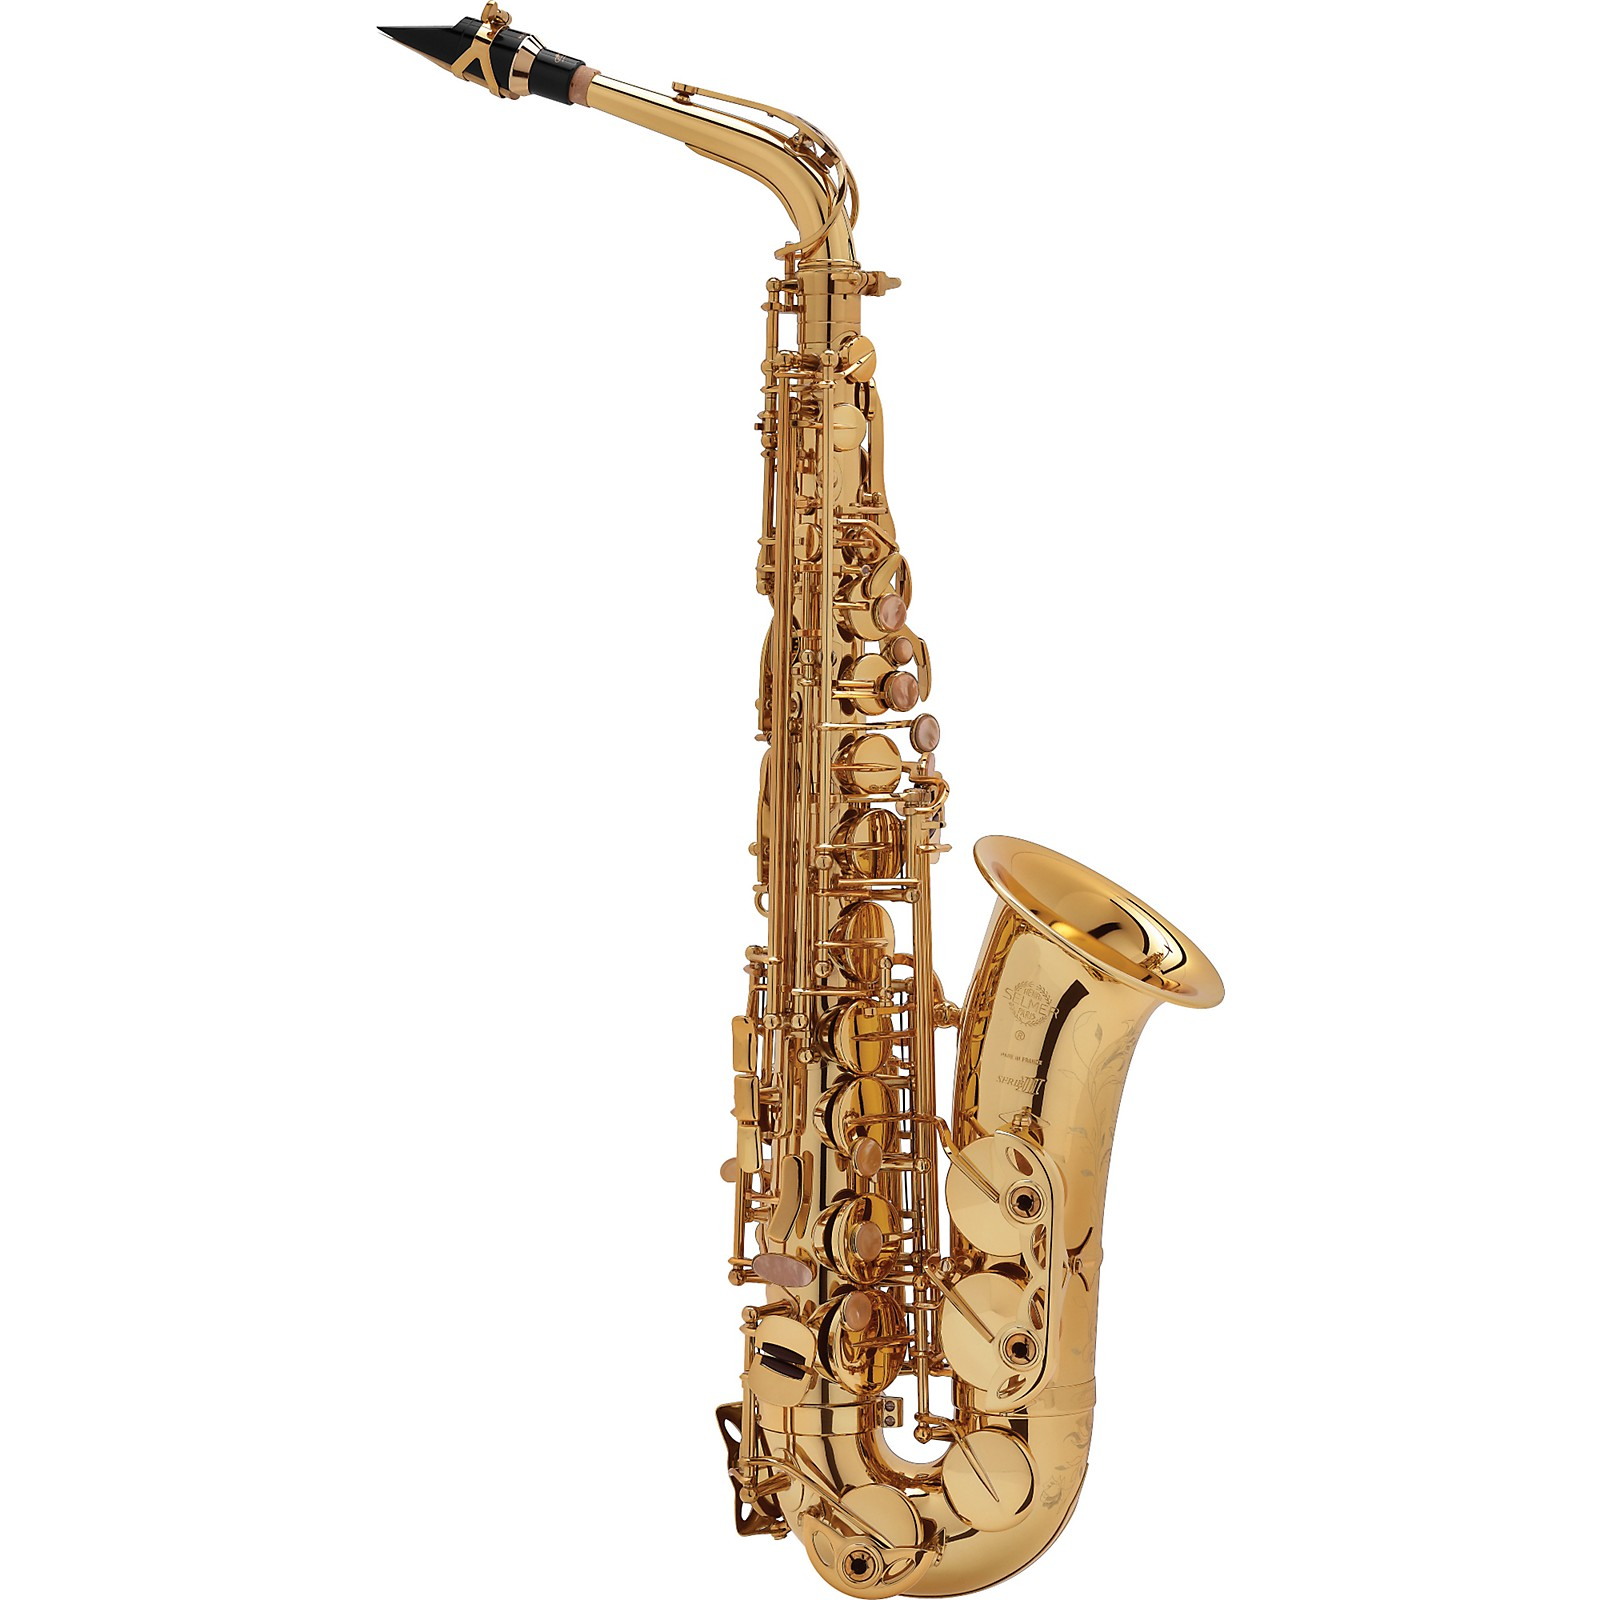 Selmer Paris Series III Model 62 Jubilee Edition Alto Saxophone